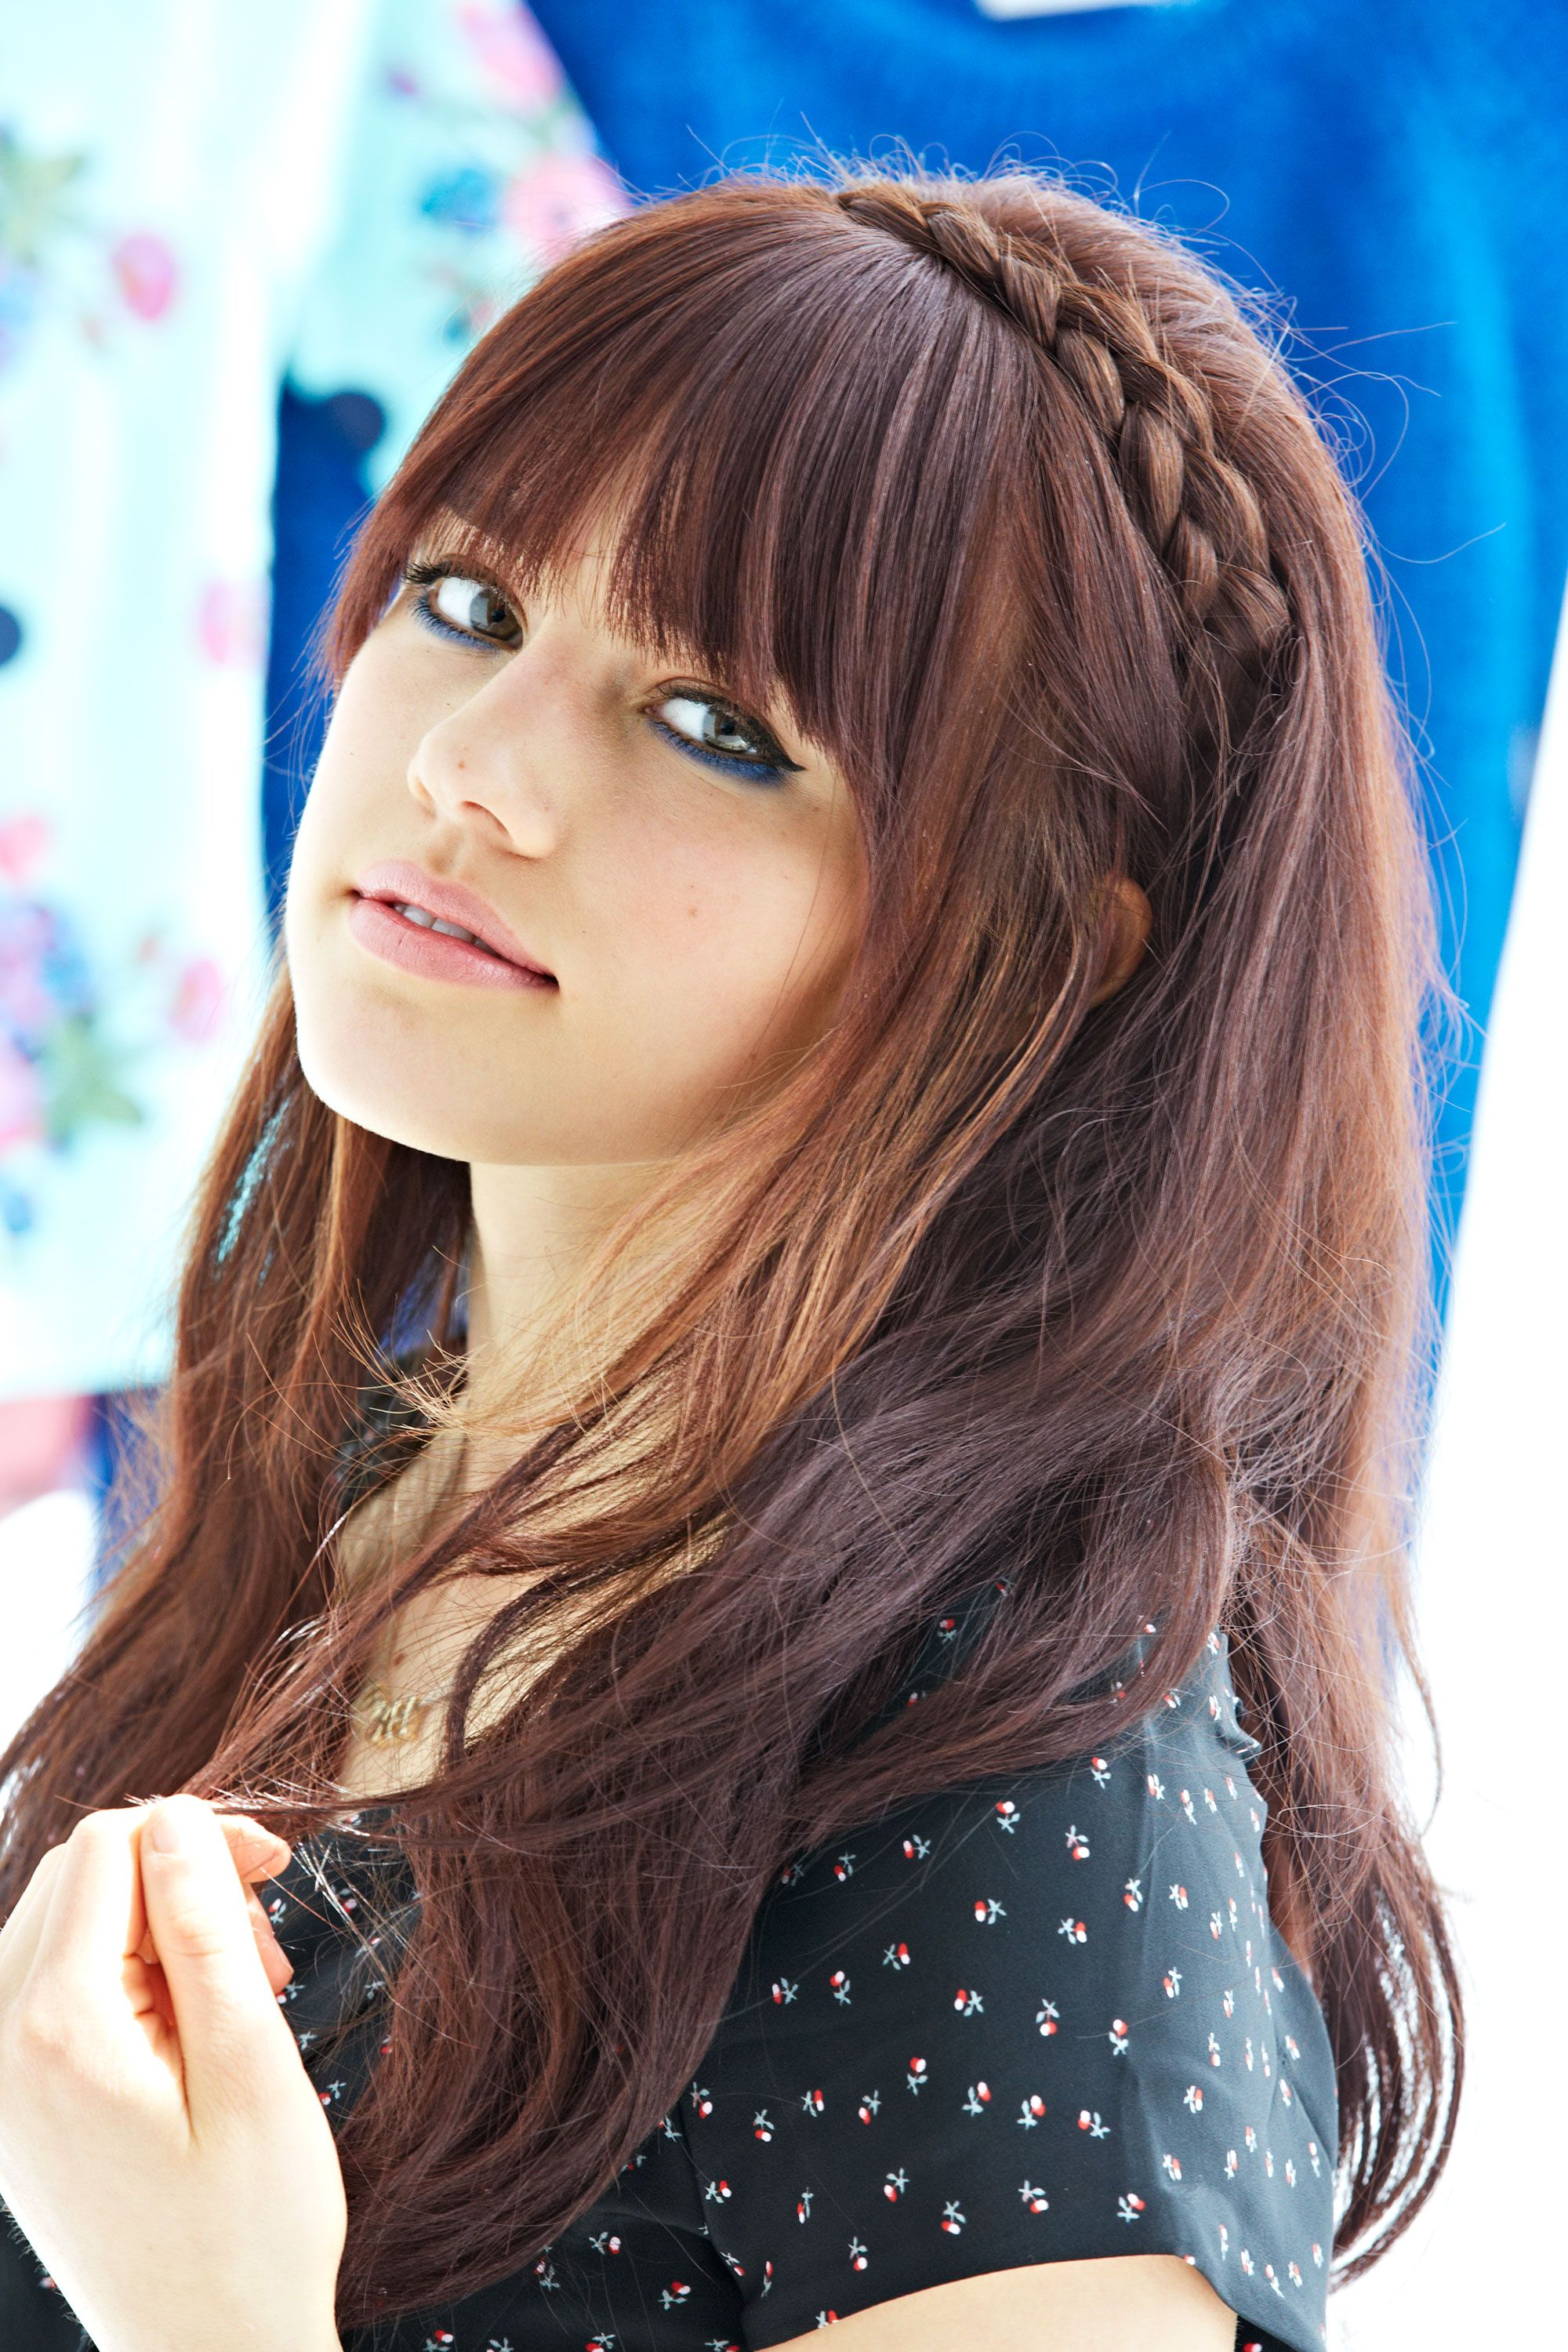 Braided Bangs Hairstyles 7 Adorable Hairstyles For Girls With Bangs Crown Braids Bangs